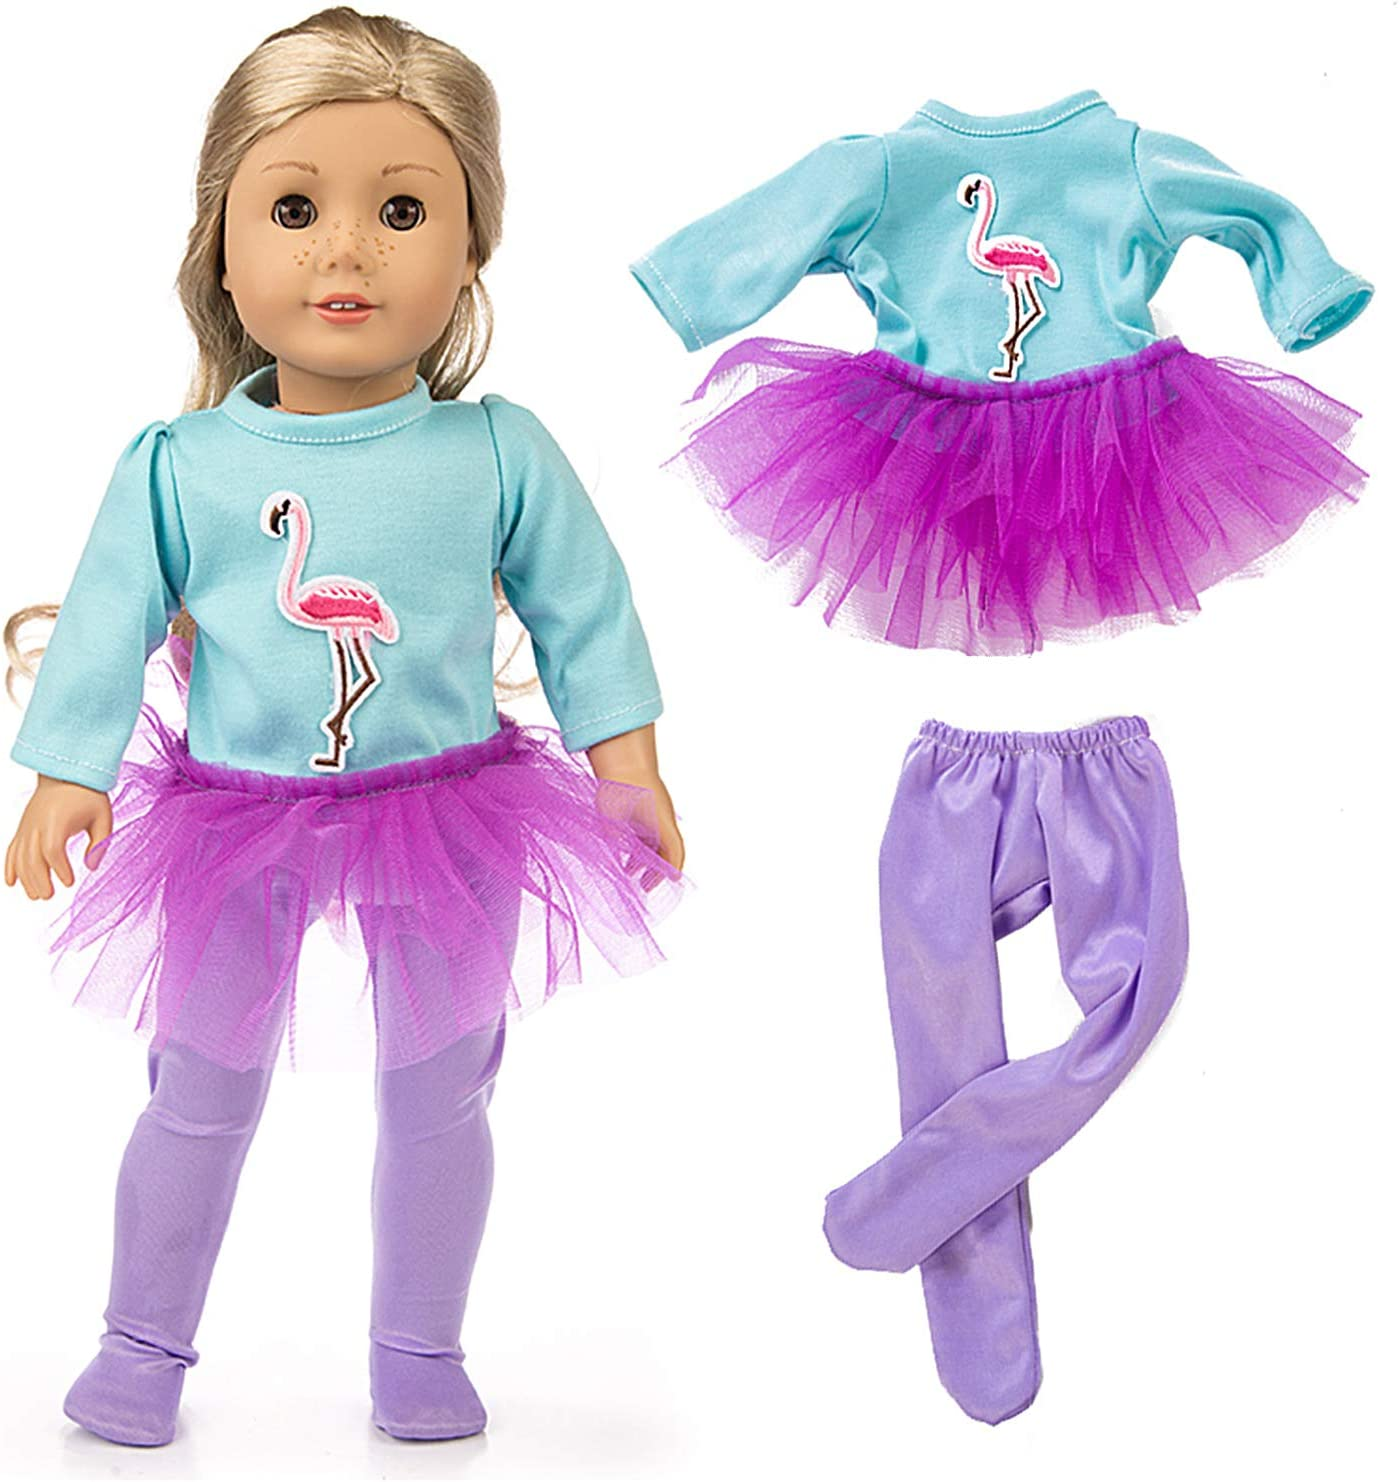 HOAYO 5 Sets Girl Doll Clothes and Accessories for 18-inch Dolls 14 Items Doll Clothes Outfits for 18-Inch American Girl Dolls